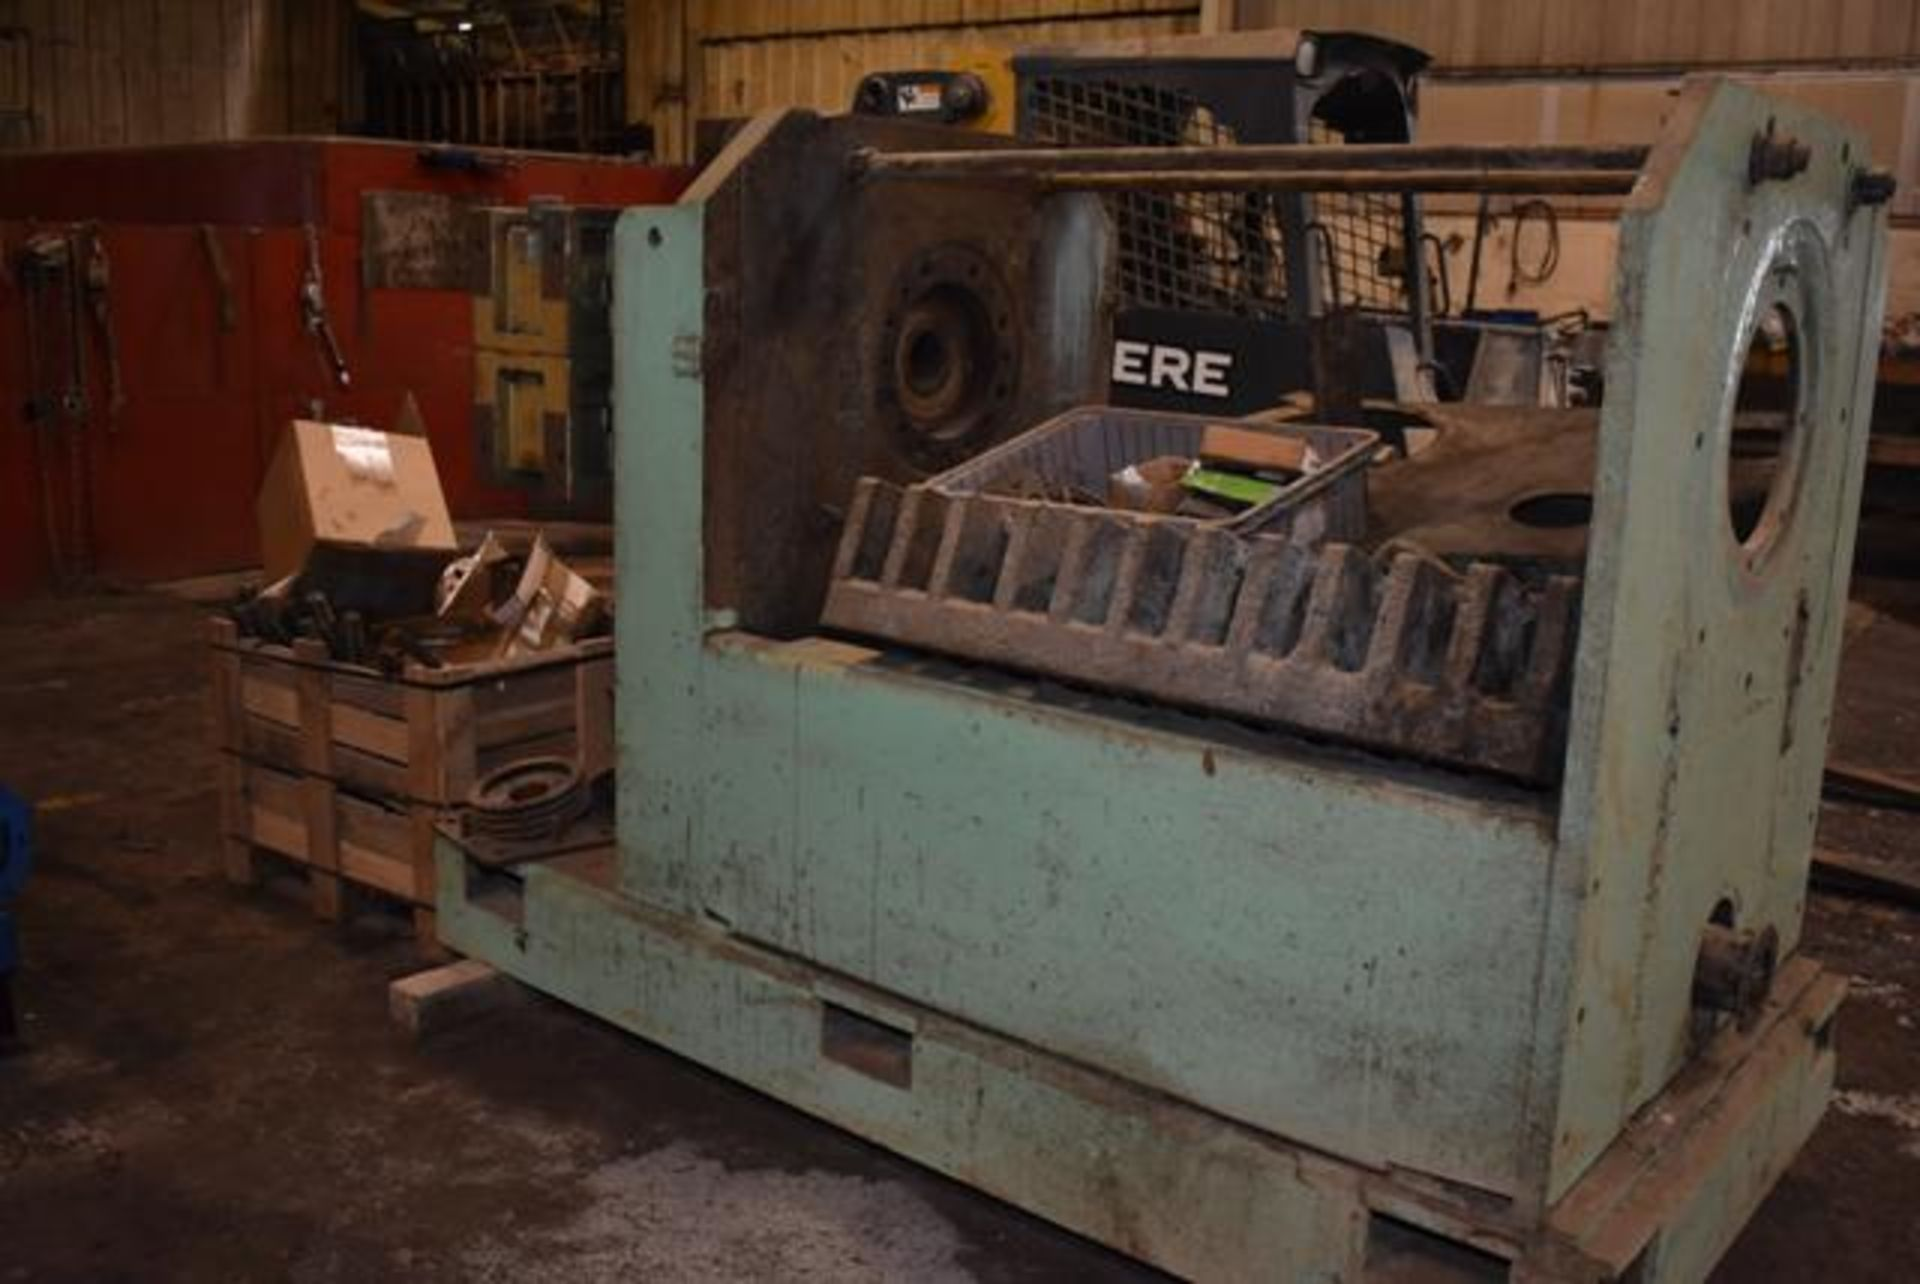 Lot 22 - Insta-Pro Model #4500 Press-Disassembled, Includes New Feeder, Note - Needs Motor. LOADING FEE: $750